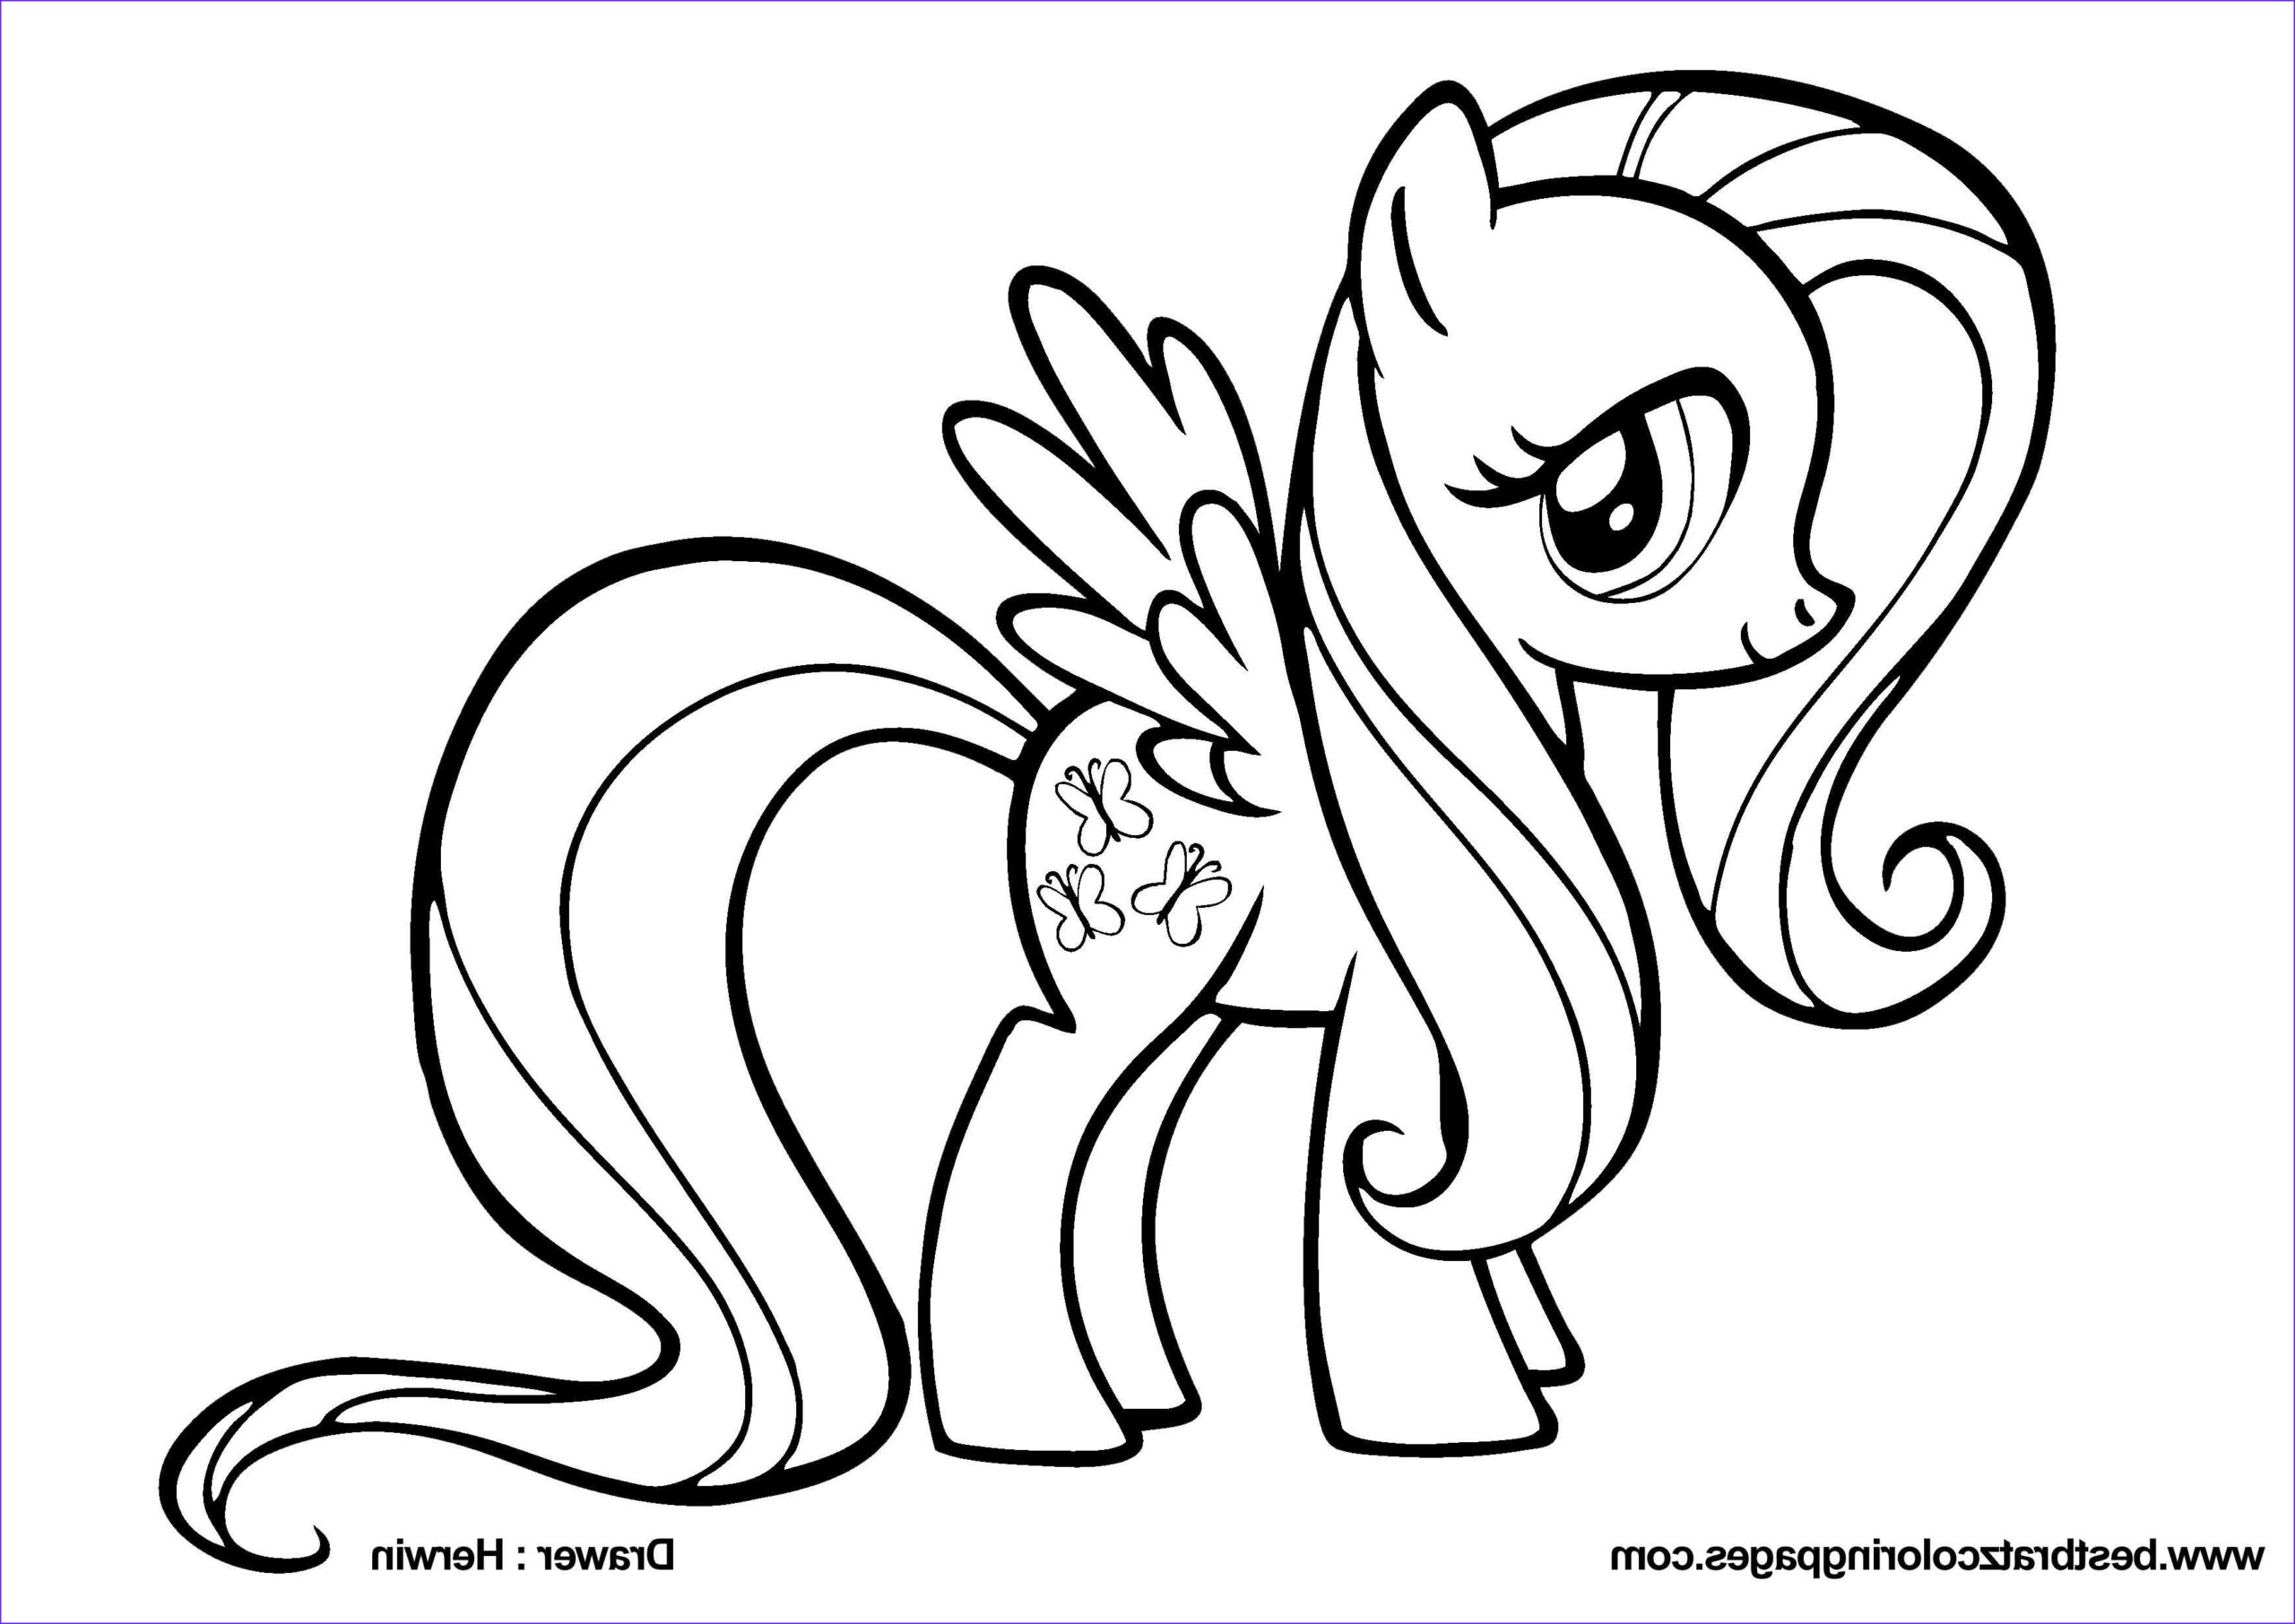 My Little Pony Friendship is Magic Coloring Pages Beautiful Photography My Little Pony Friendship is Magic Coloring Pages at